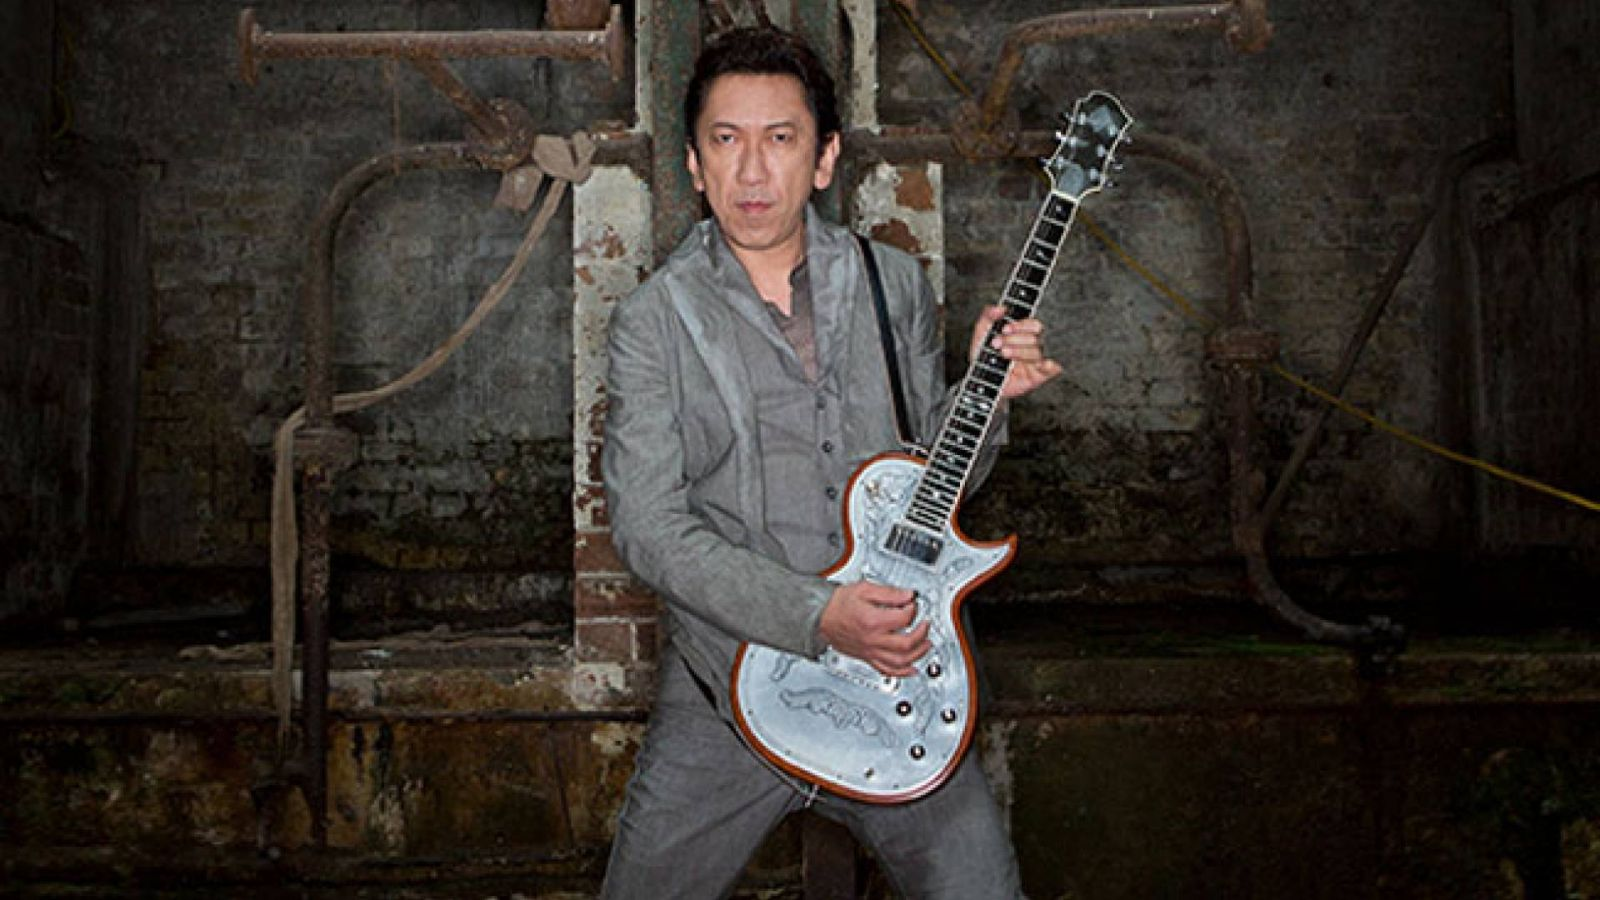 Hotei Tomoyasu to Hold London Gig © DADA MUSIC Ltd. All rights reserved.